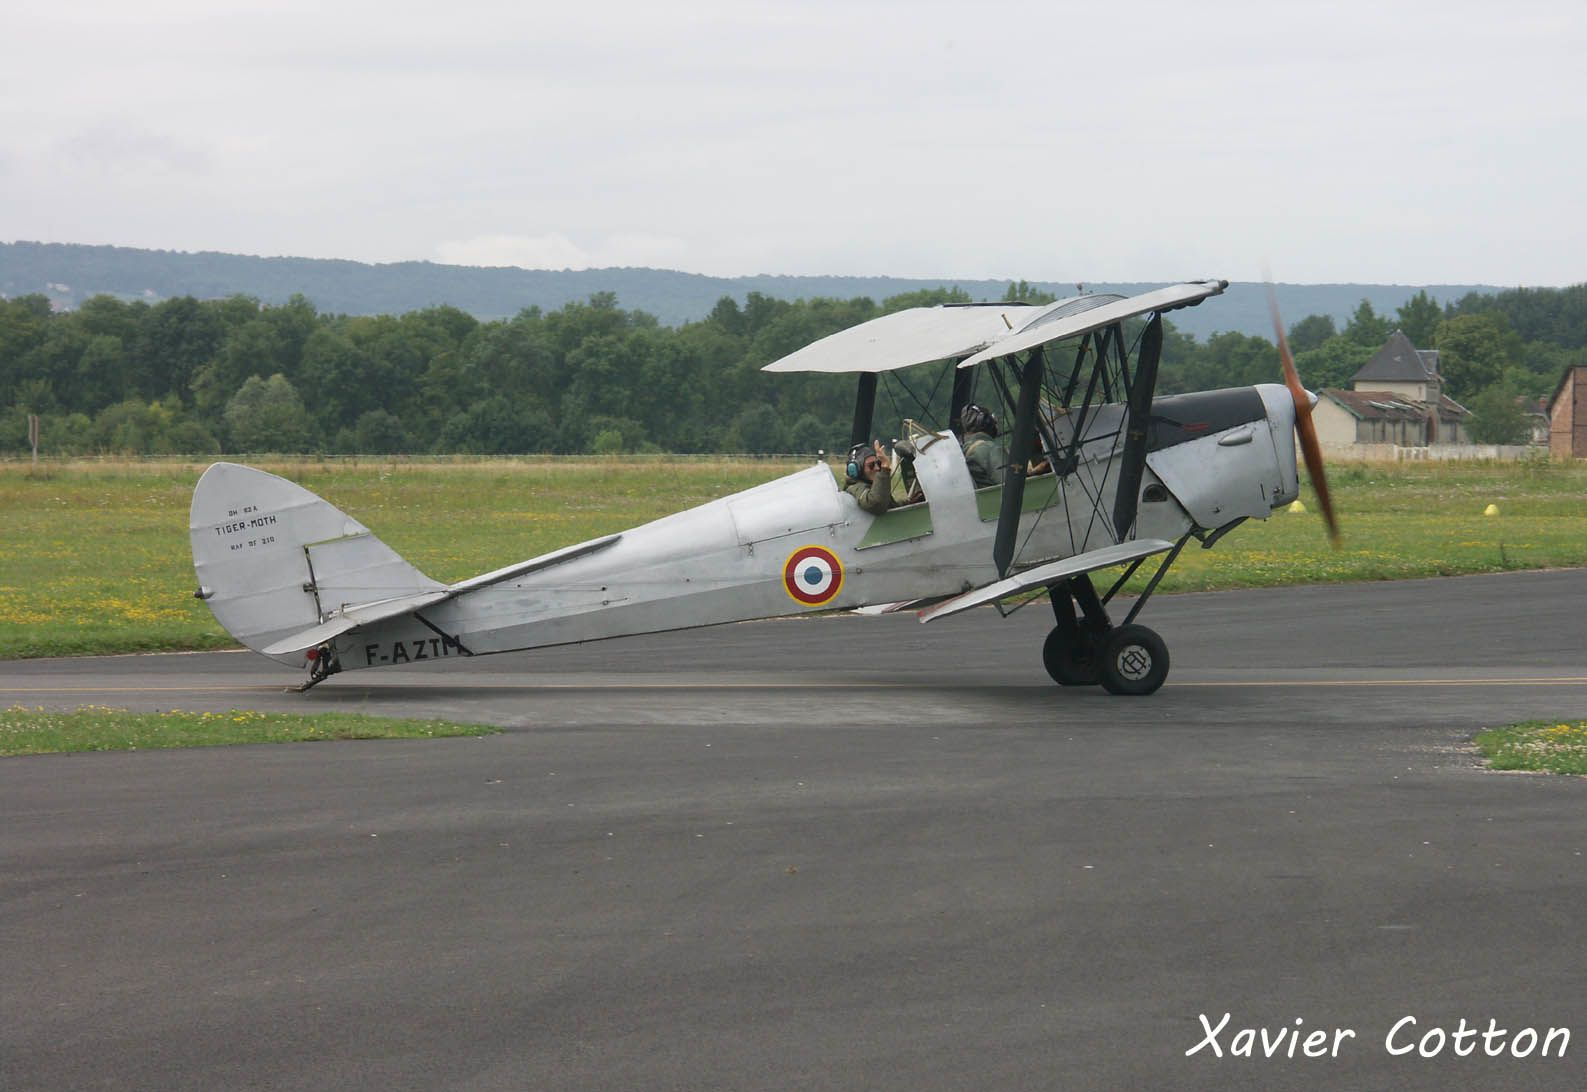 Le DH-82 Tiger Moth F-AZTM (photo Xavier Cotton)